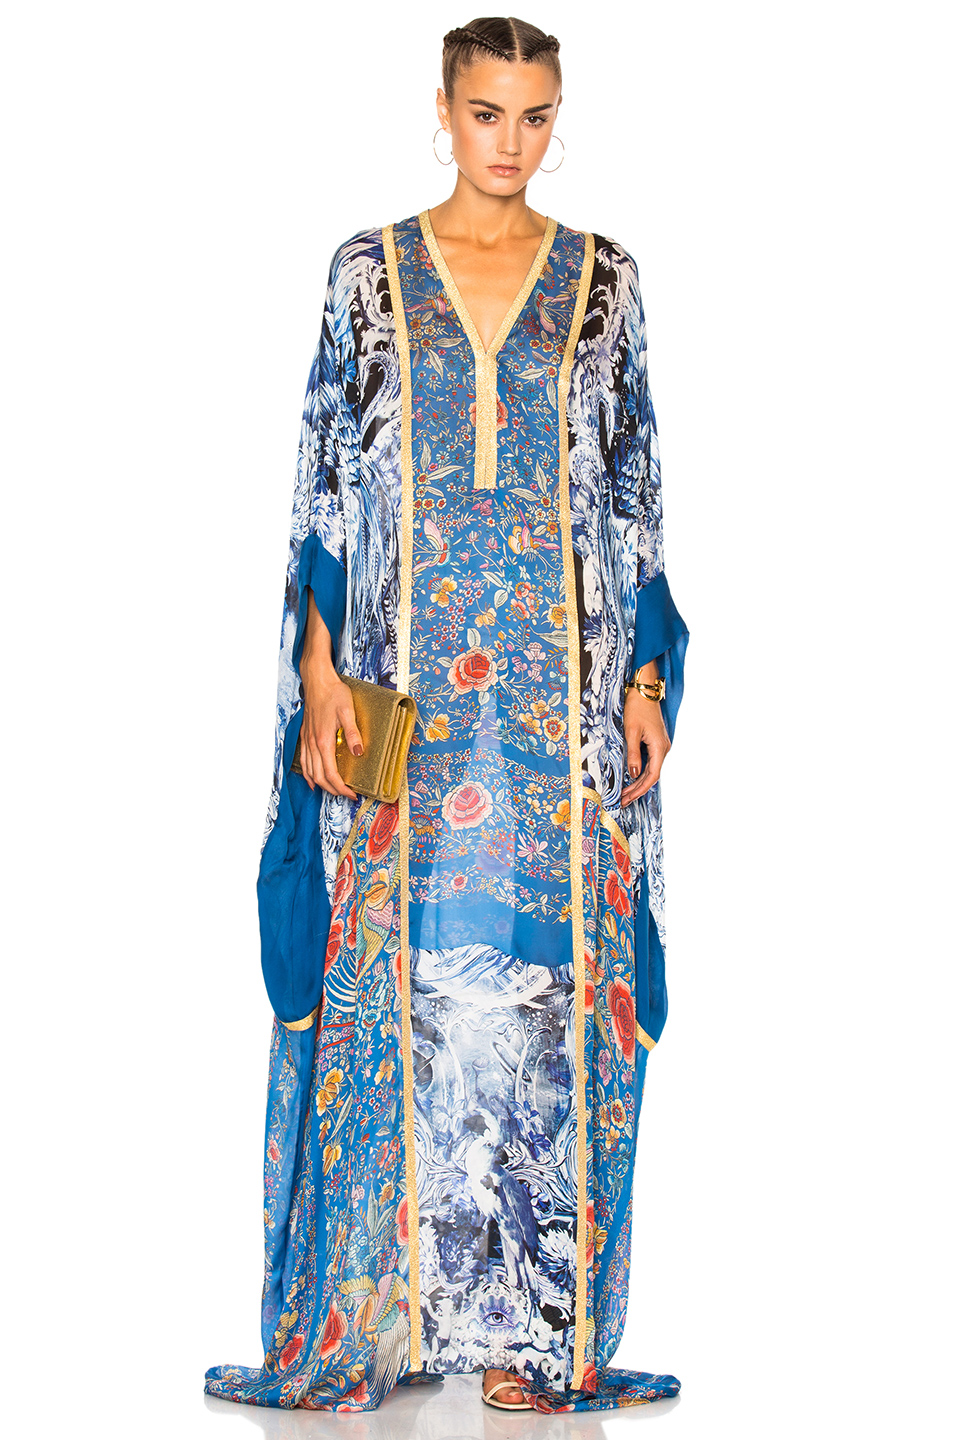 Photo of Roberto Cavalli Printed Woven Dress in Blue,Floral online sales